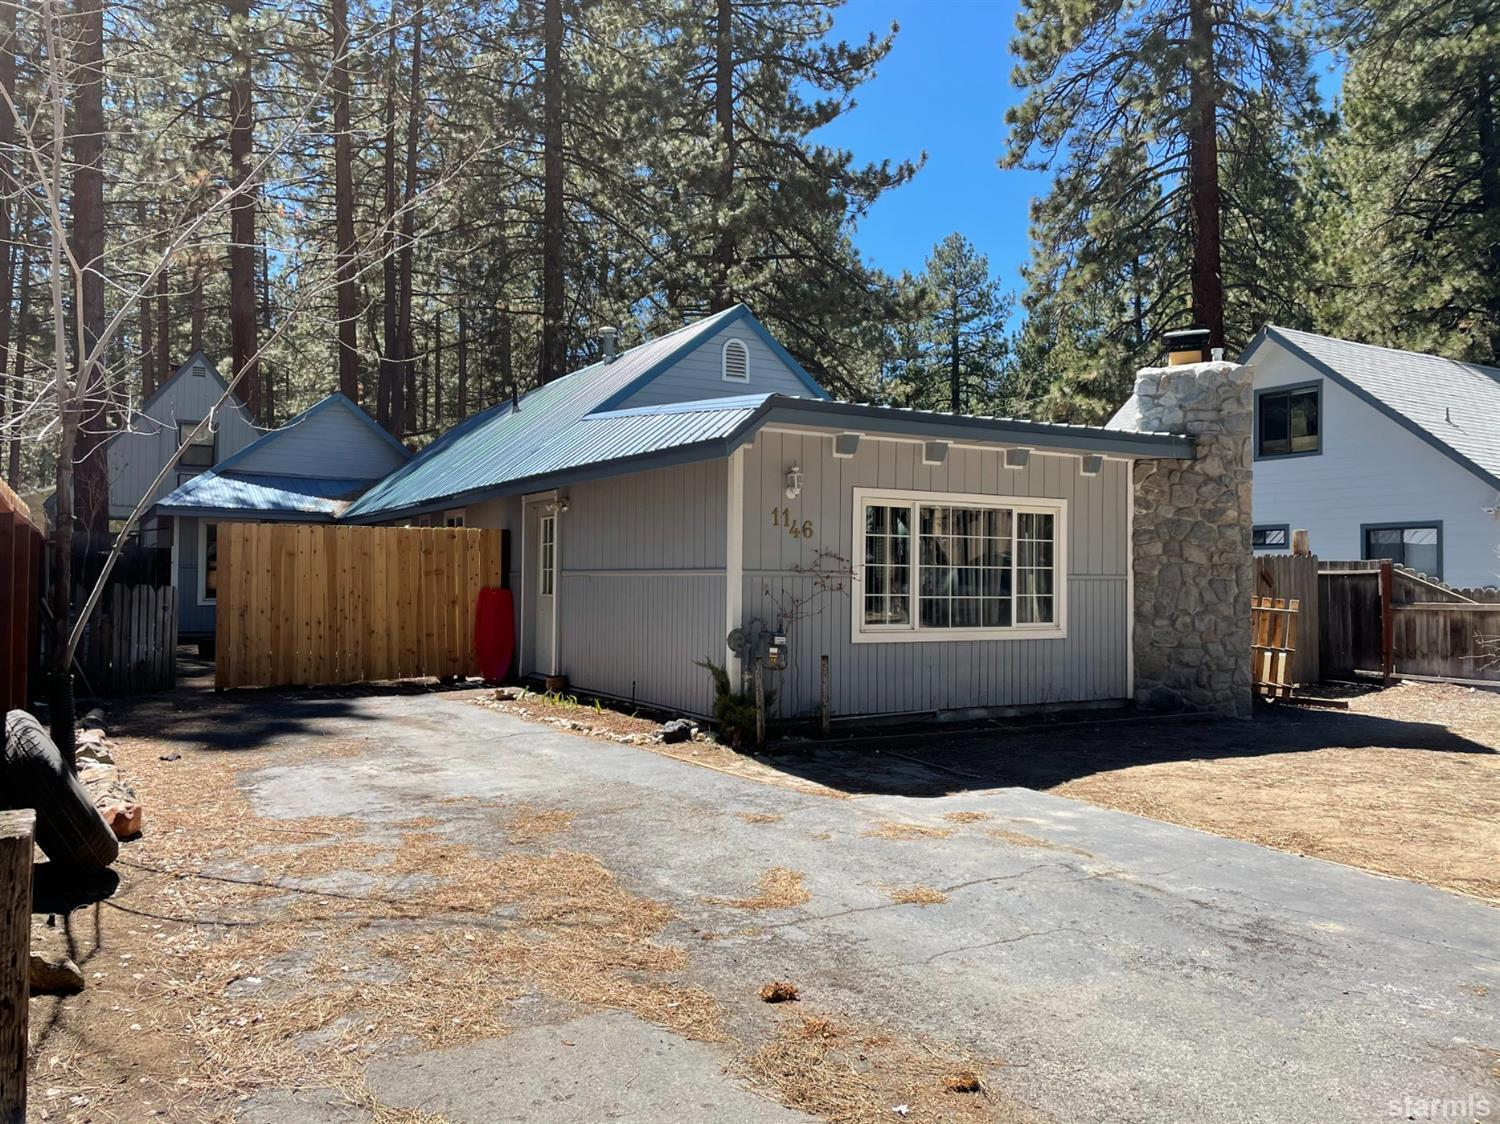 1146 Carson Avenue, 134193, South Lake Tahoe, Single-Family Home,  for sale, Brandie Griffith, Realty World - Lake Tahoe